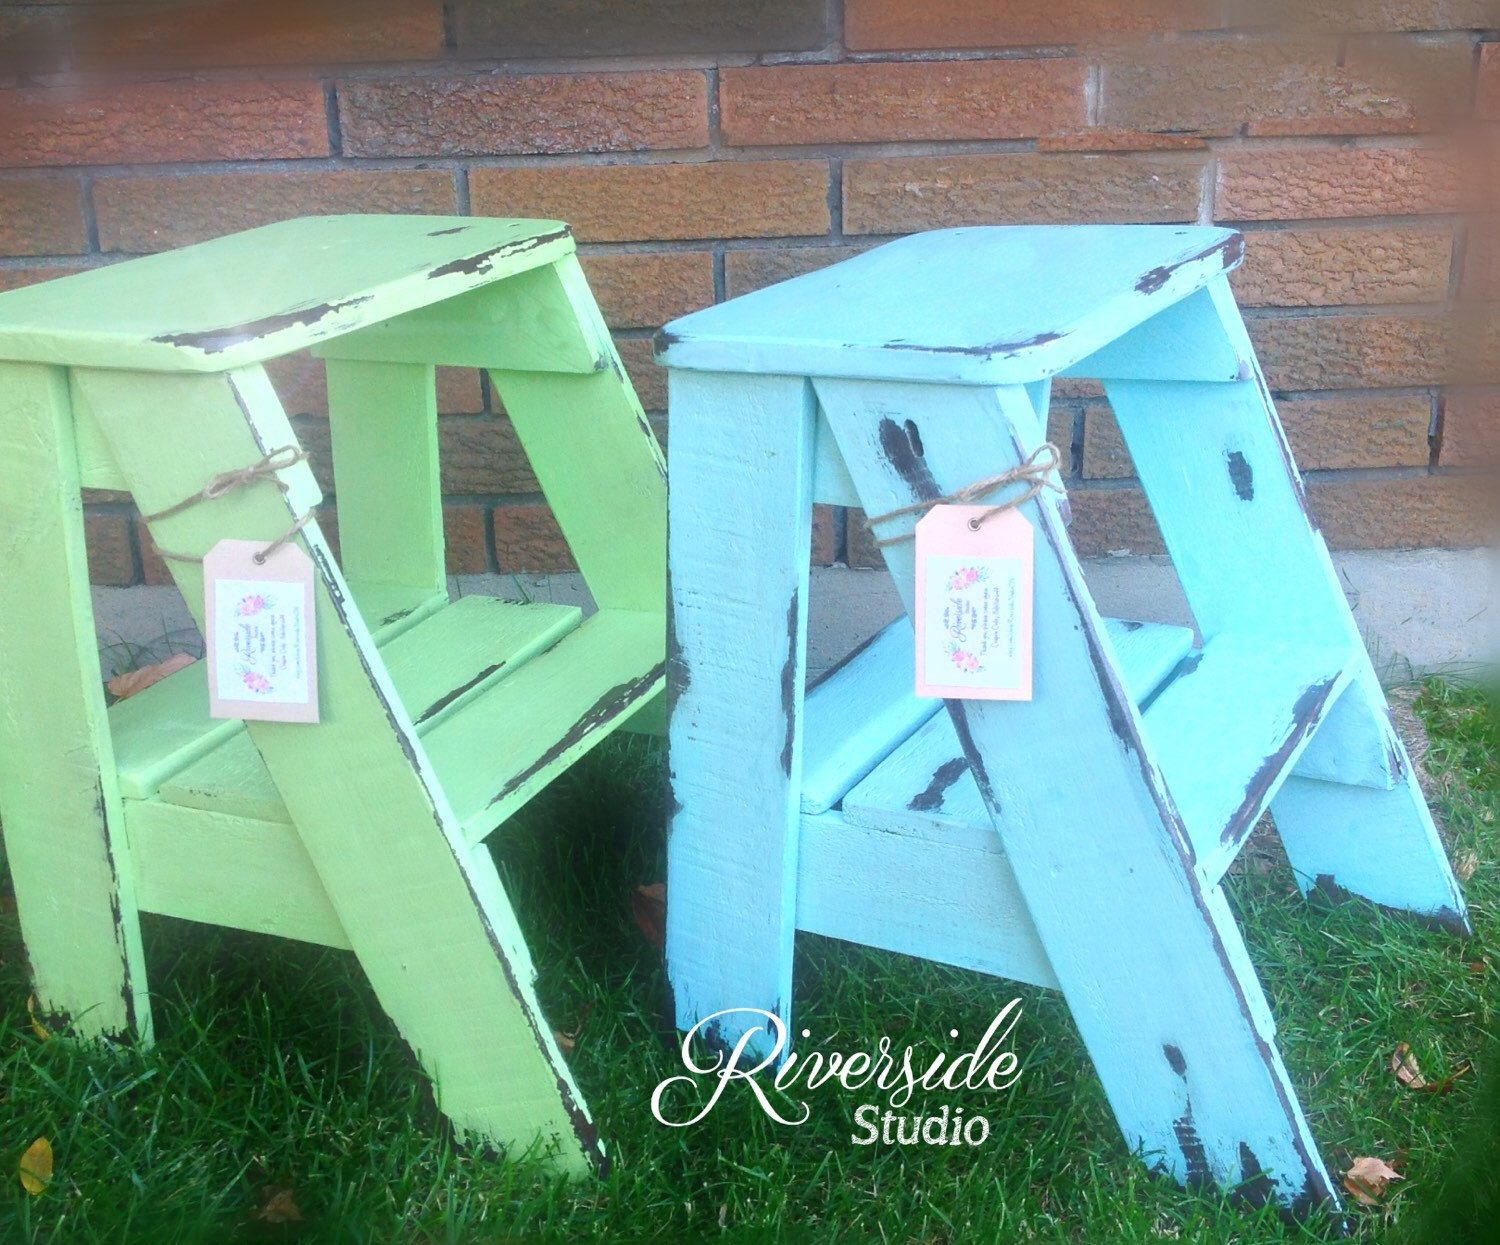 Sensational Farmhouse Wood Stool Kids Step Stool Bedroom Side Table Pabps2019 Chair Design Images Pabps2019Com